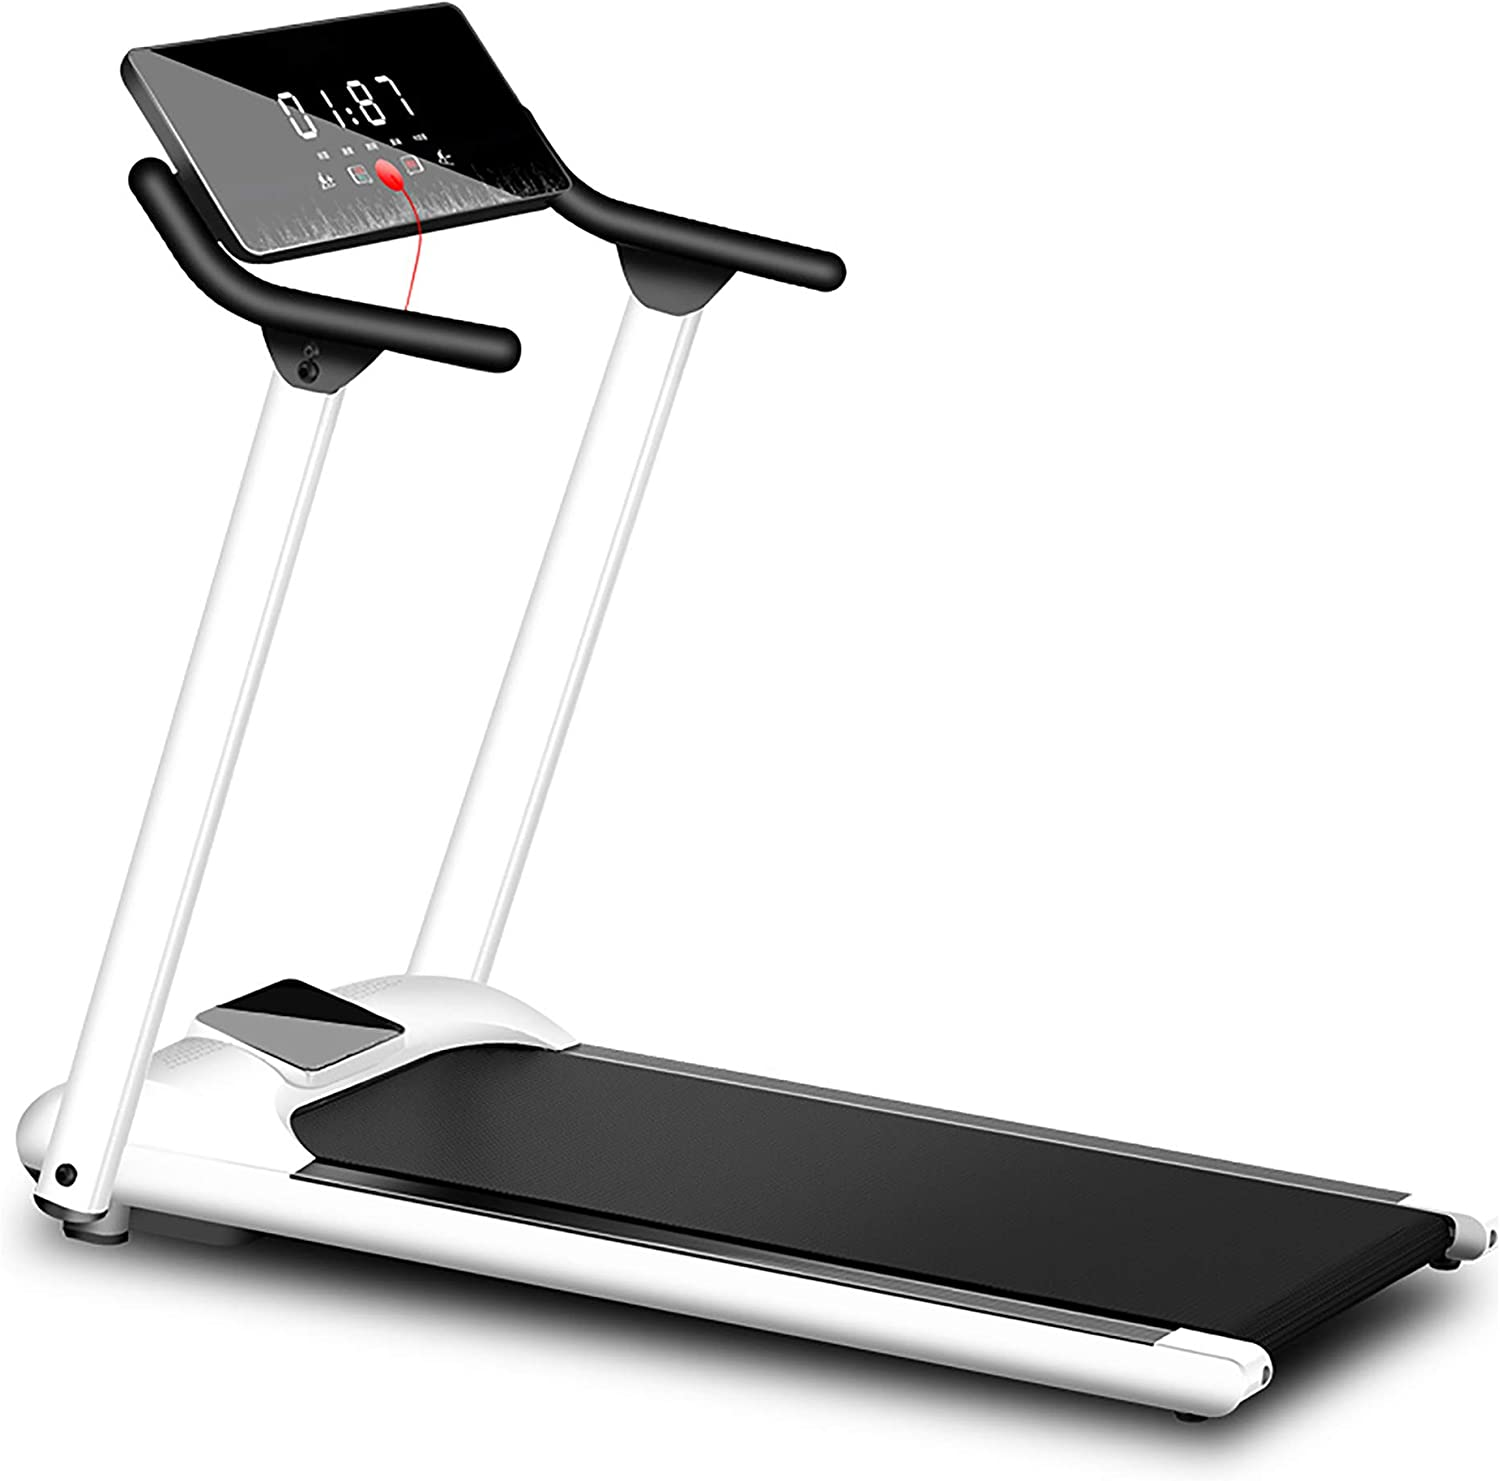 Treadmills for Home Foldable, 3.25Hp App Control Electric Folding Treadmills, Exercise Machine with Automatic Incline, Running Walking Machine for Office/Gym Cardio Use